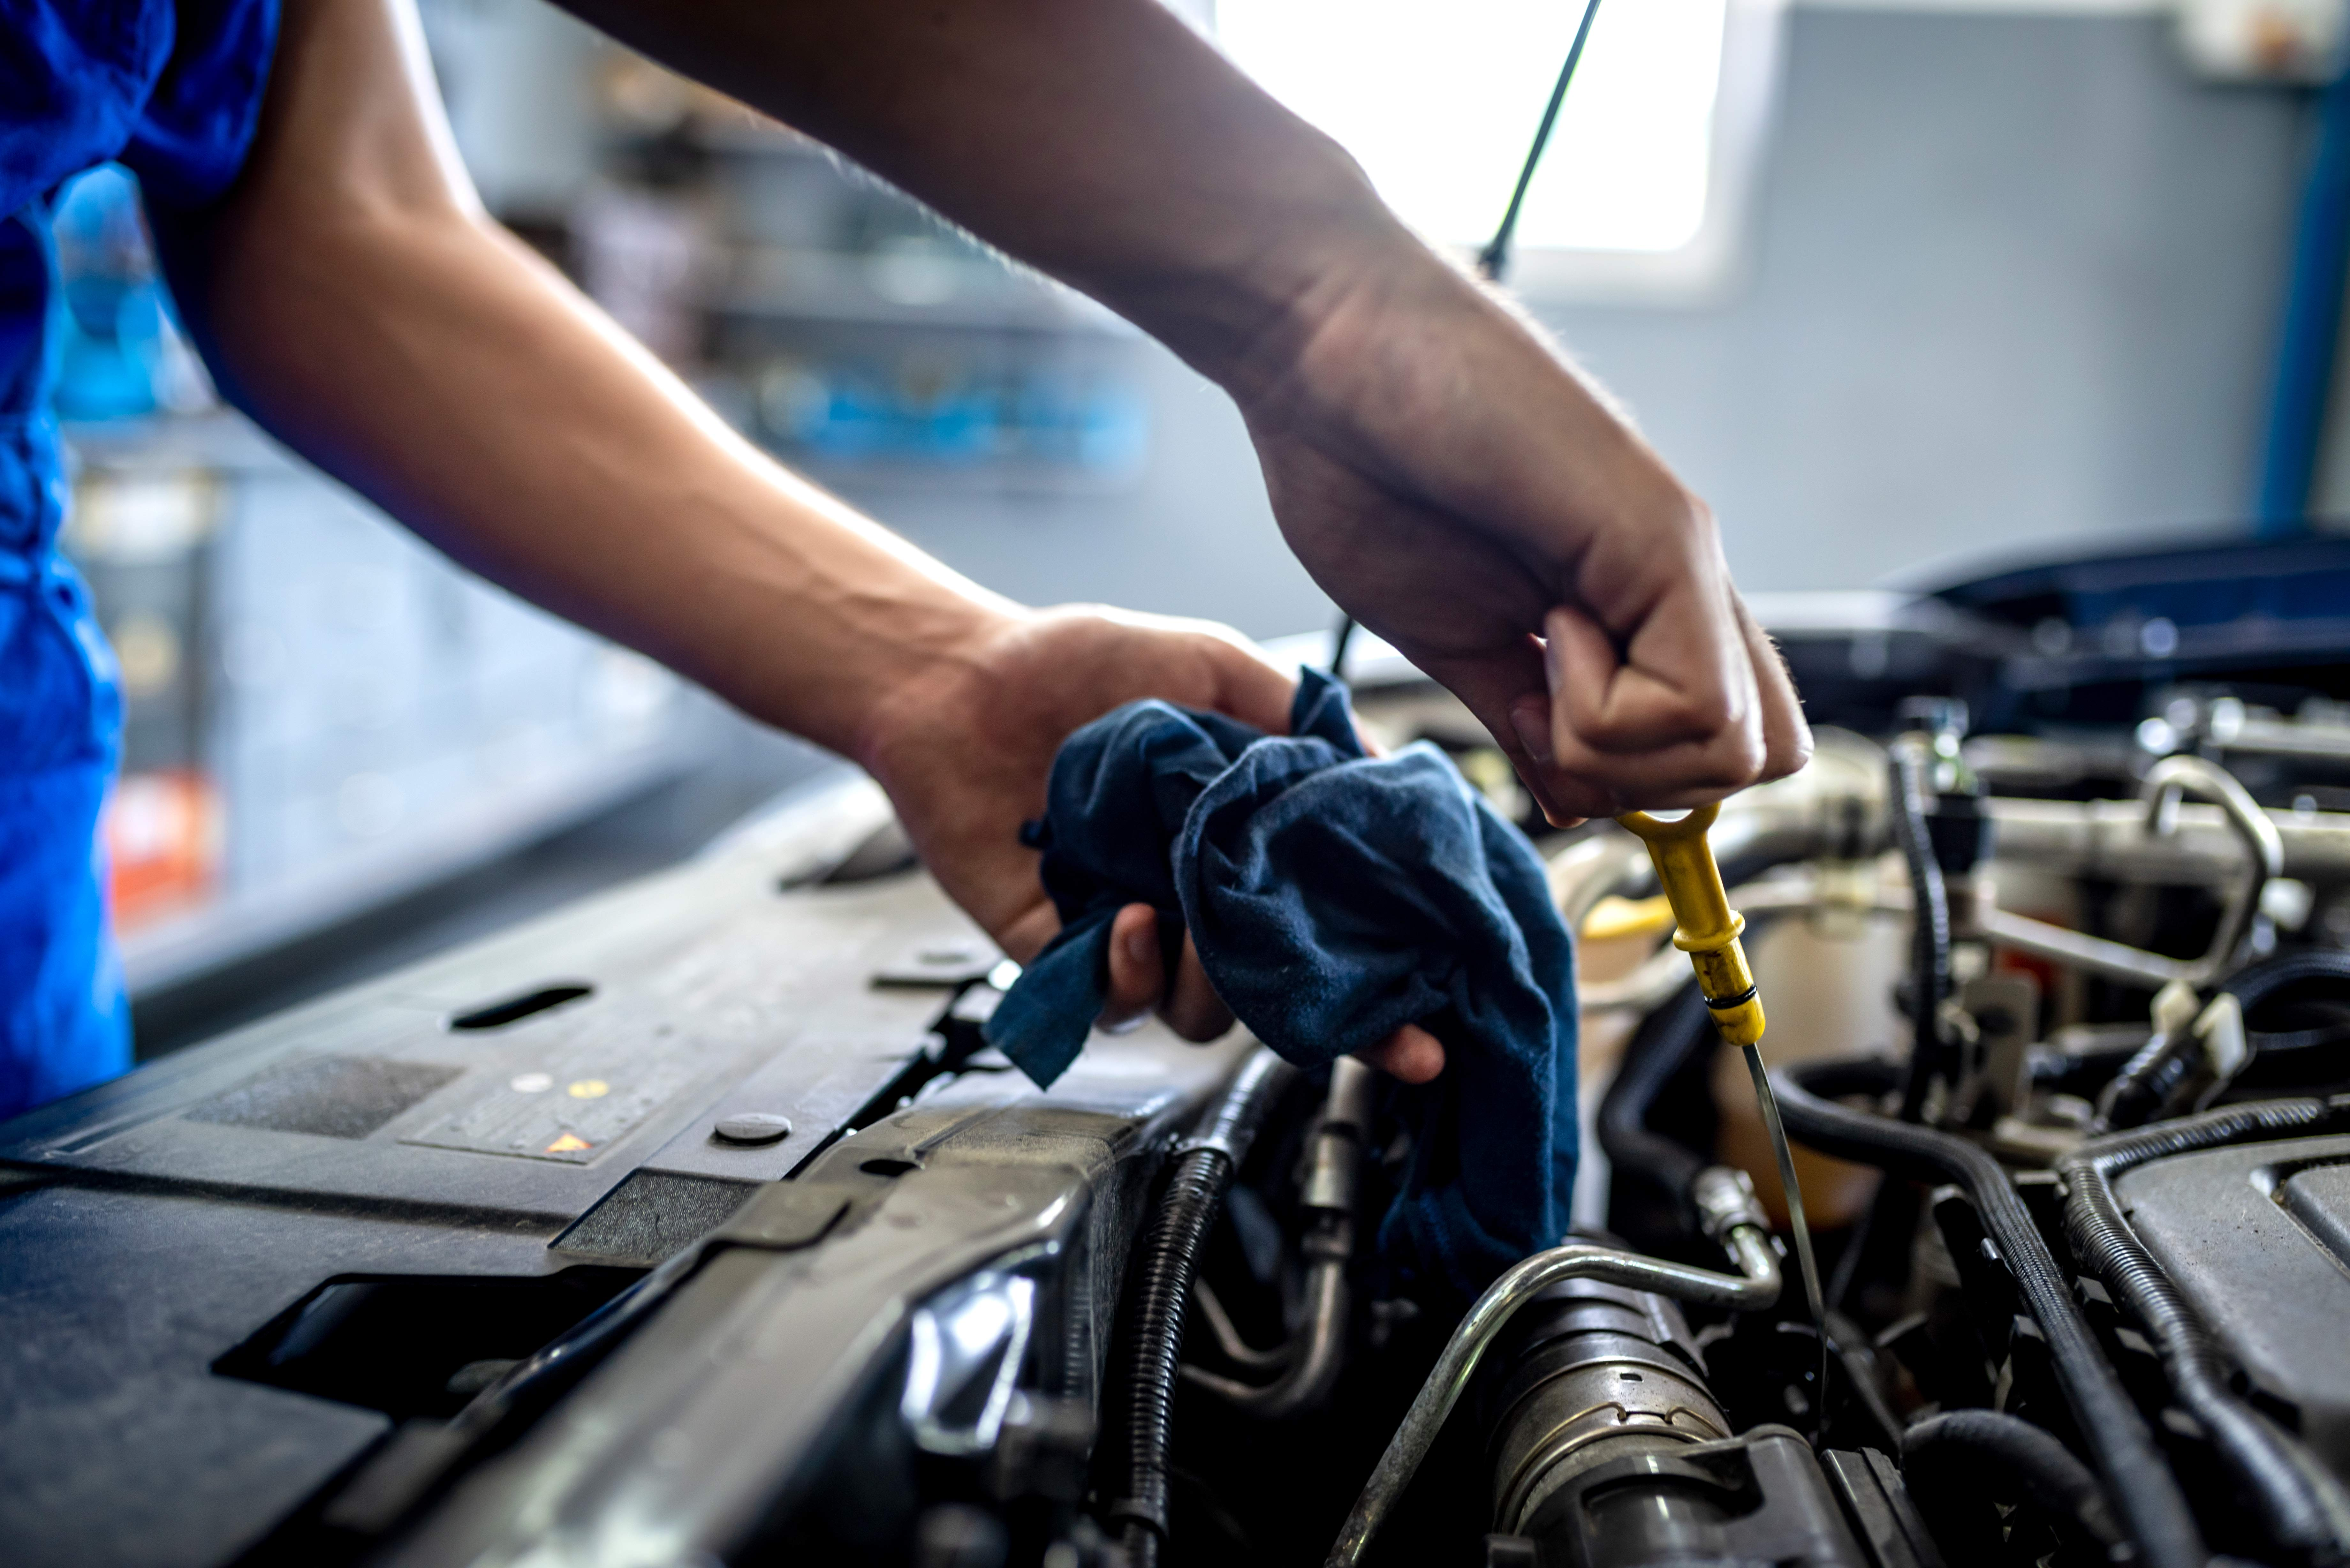 vehicle maintenance during COVID